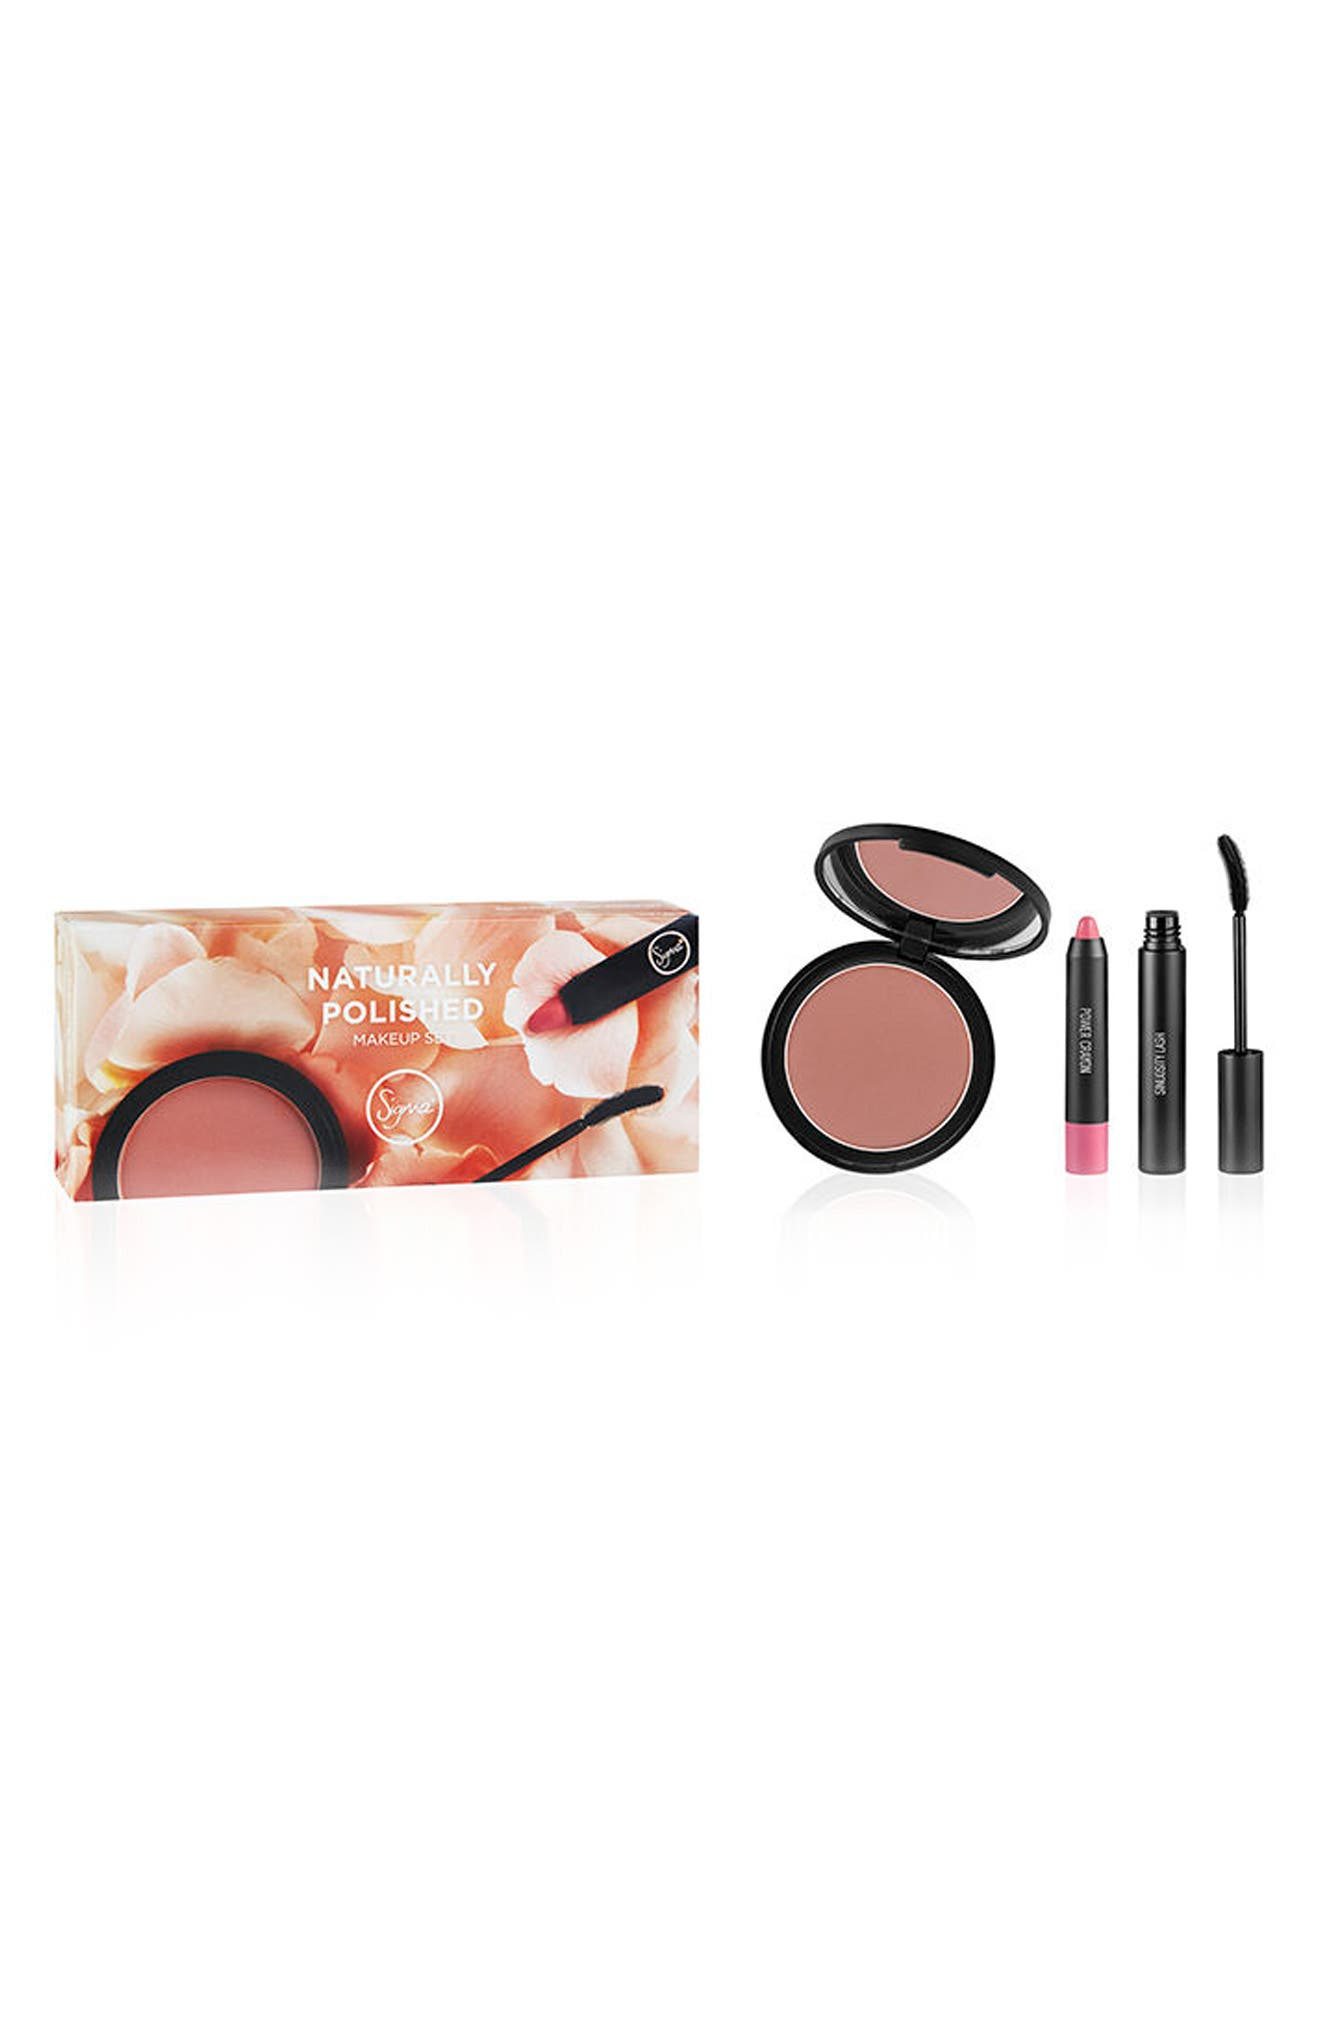 Alternate Image 1 Selected - Sigma Beauty Naturally Polished Makeup Set